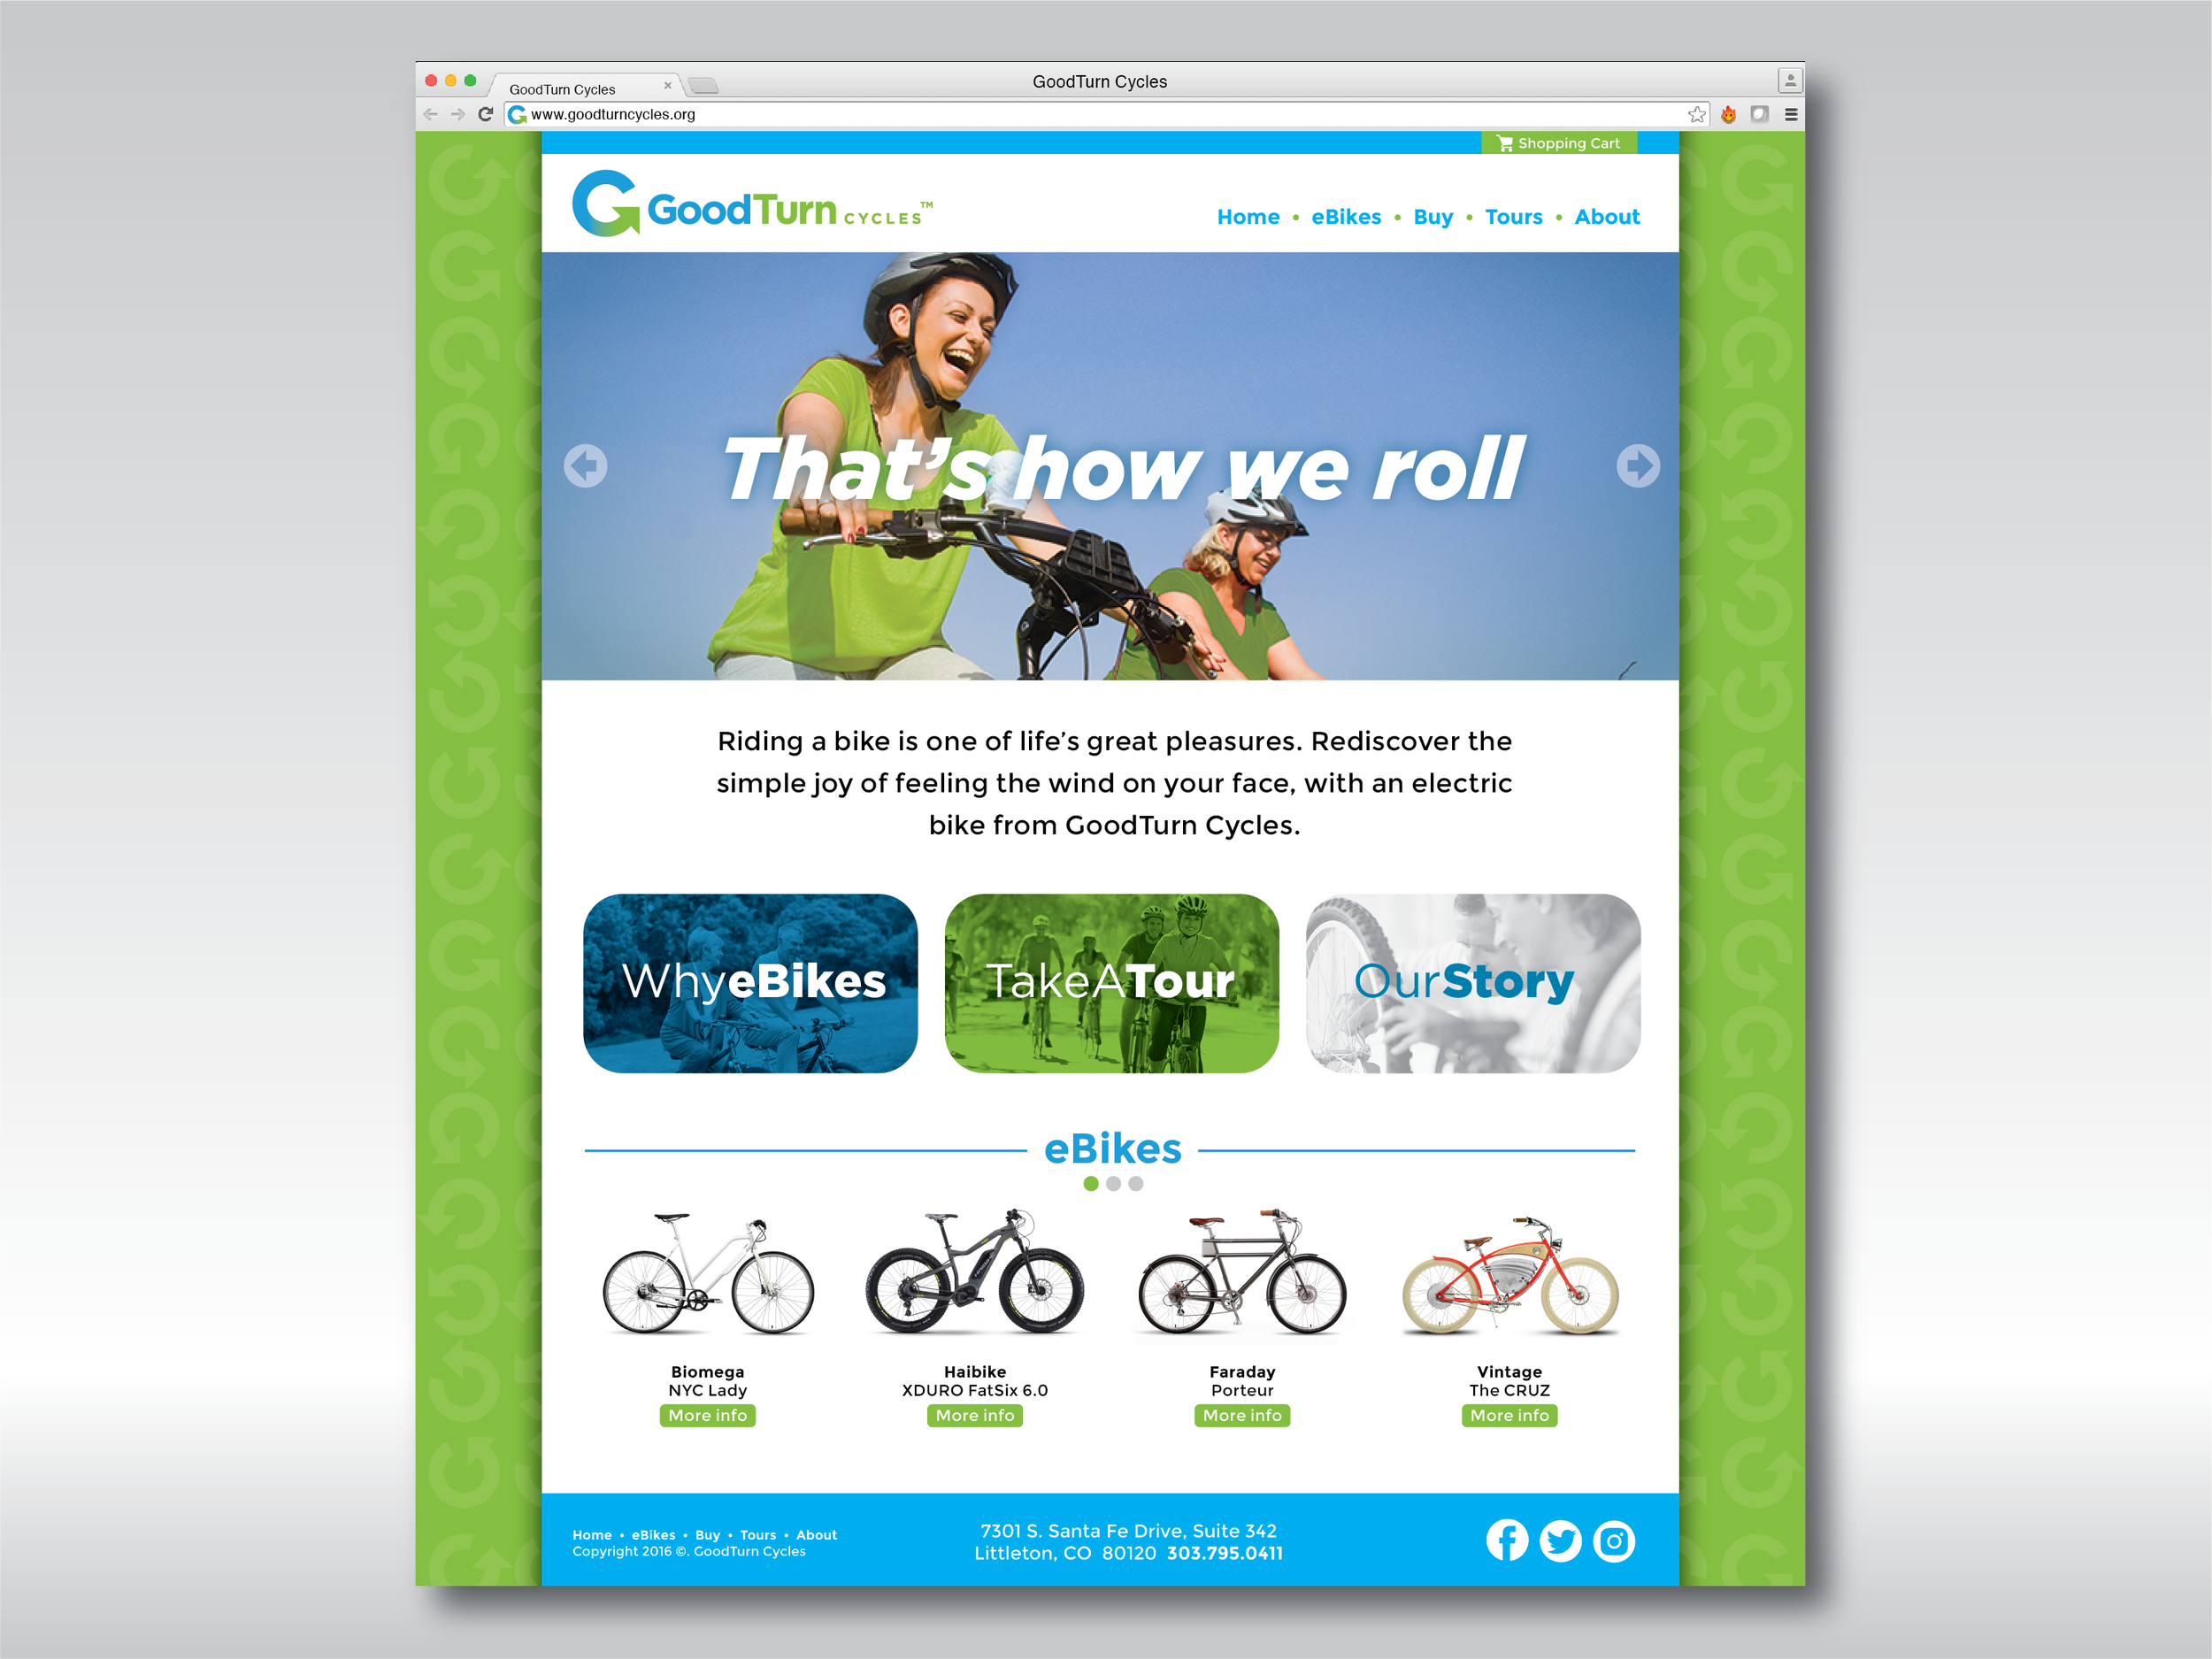 Click the image to visit the GoodTurn Cycles website.